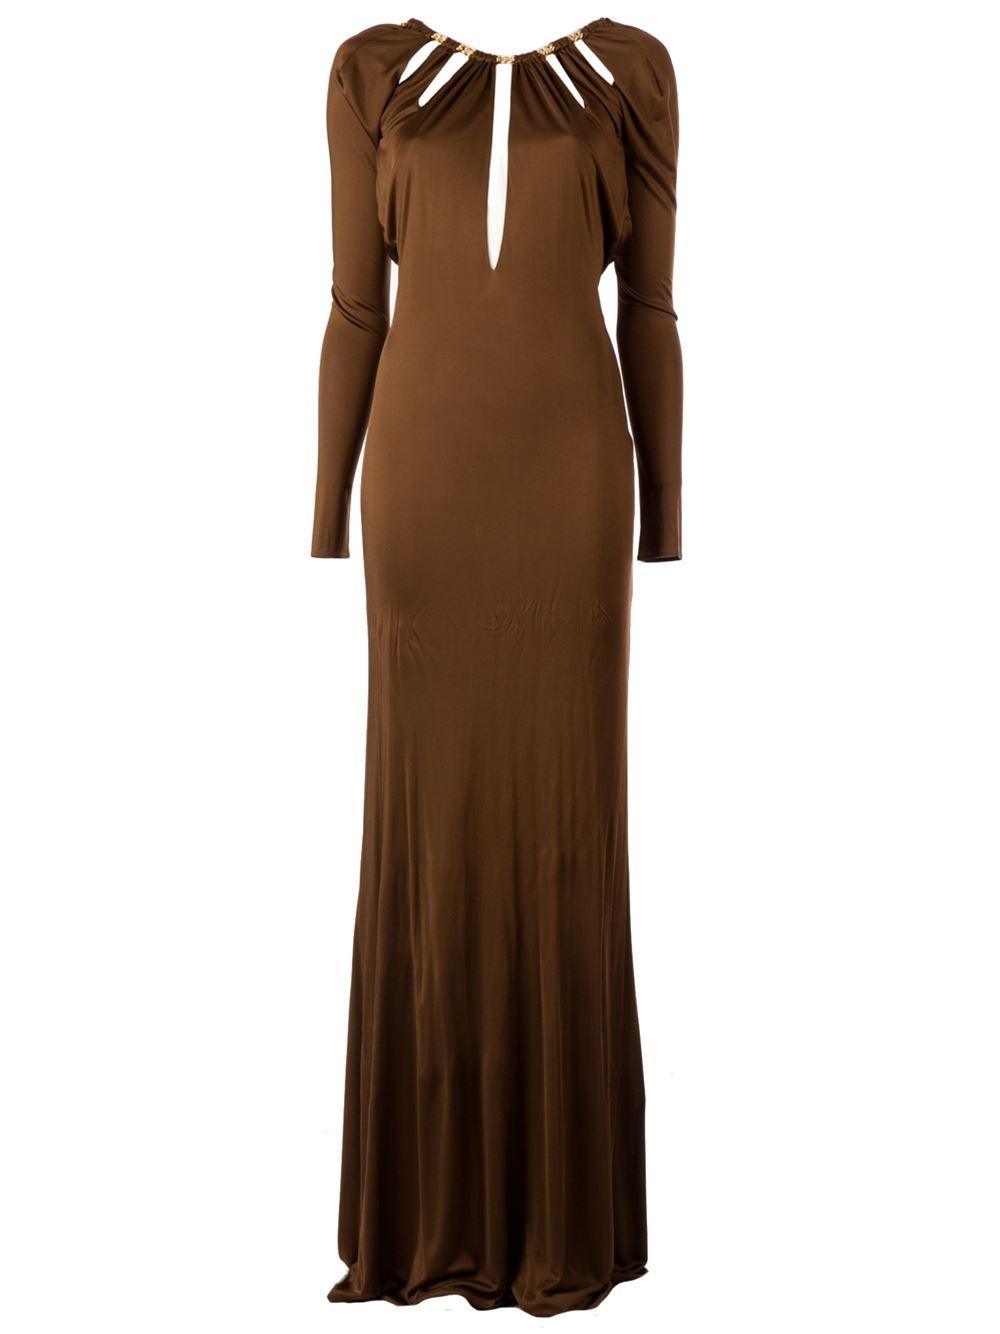 Emilio Pucci Backless Evening Gown - L'eclaireur - Farfetch.com